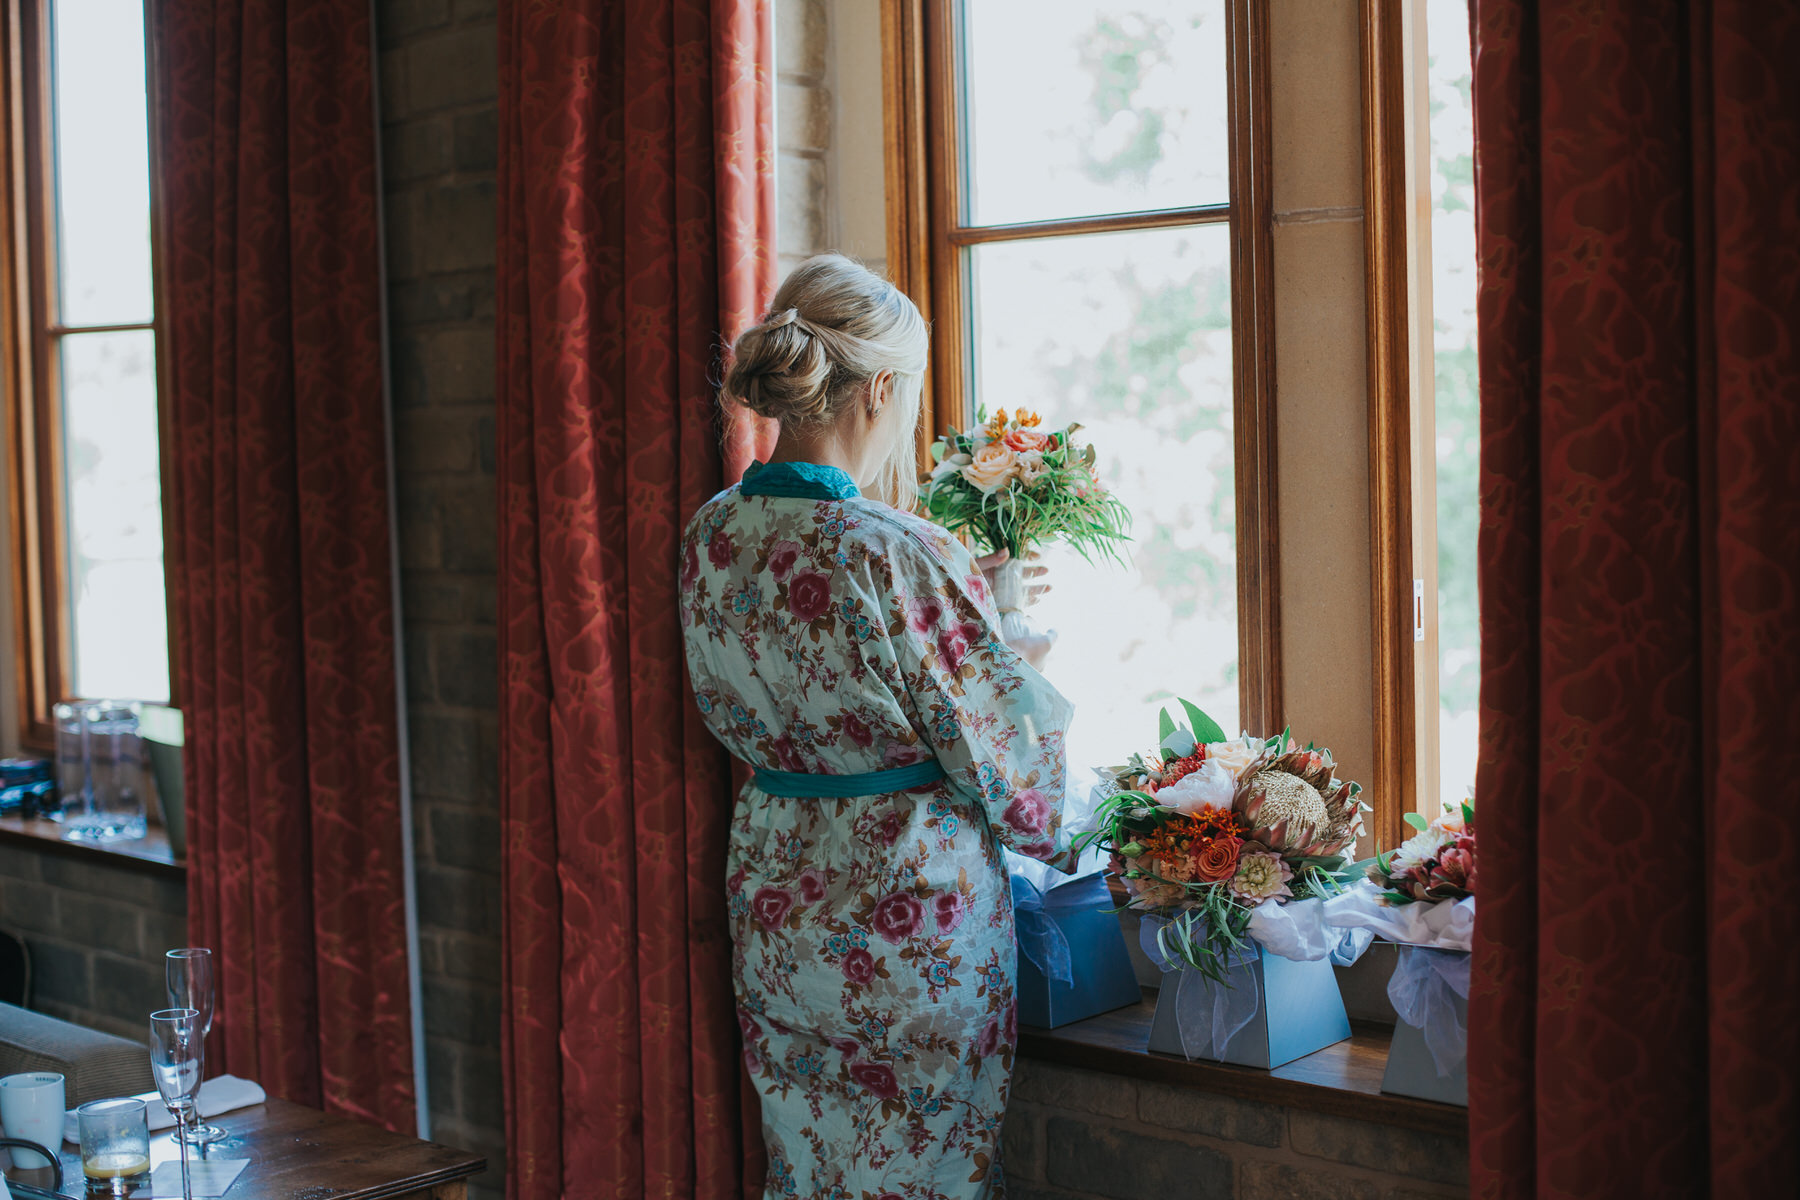 42 bride admiring bouquets reportage wedding photo.jpg